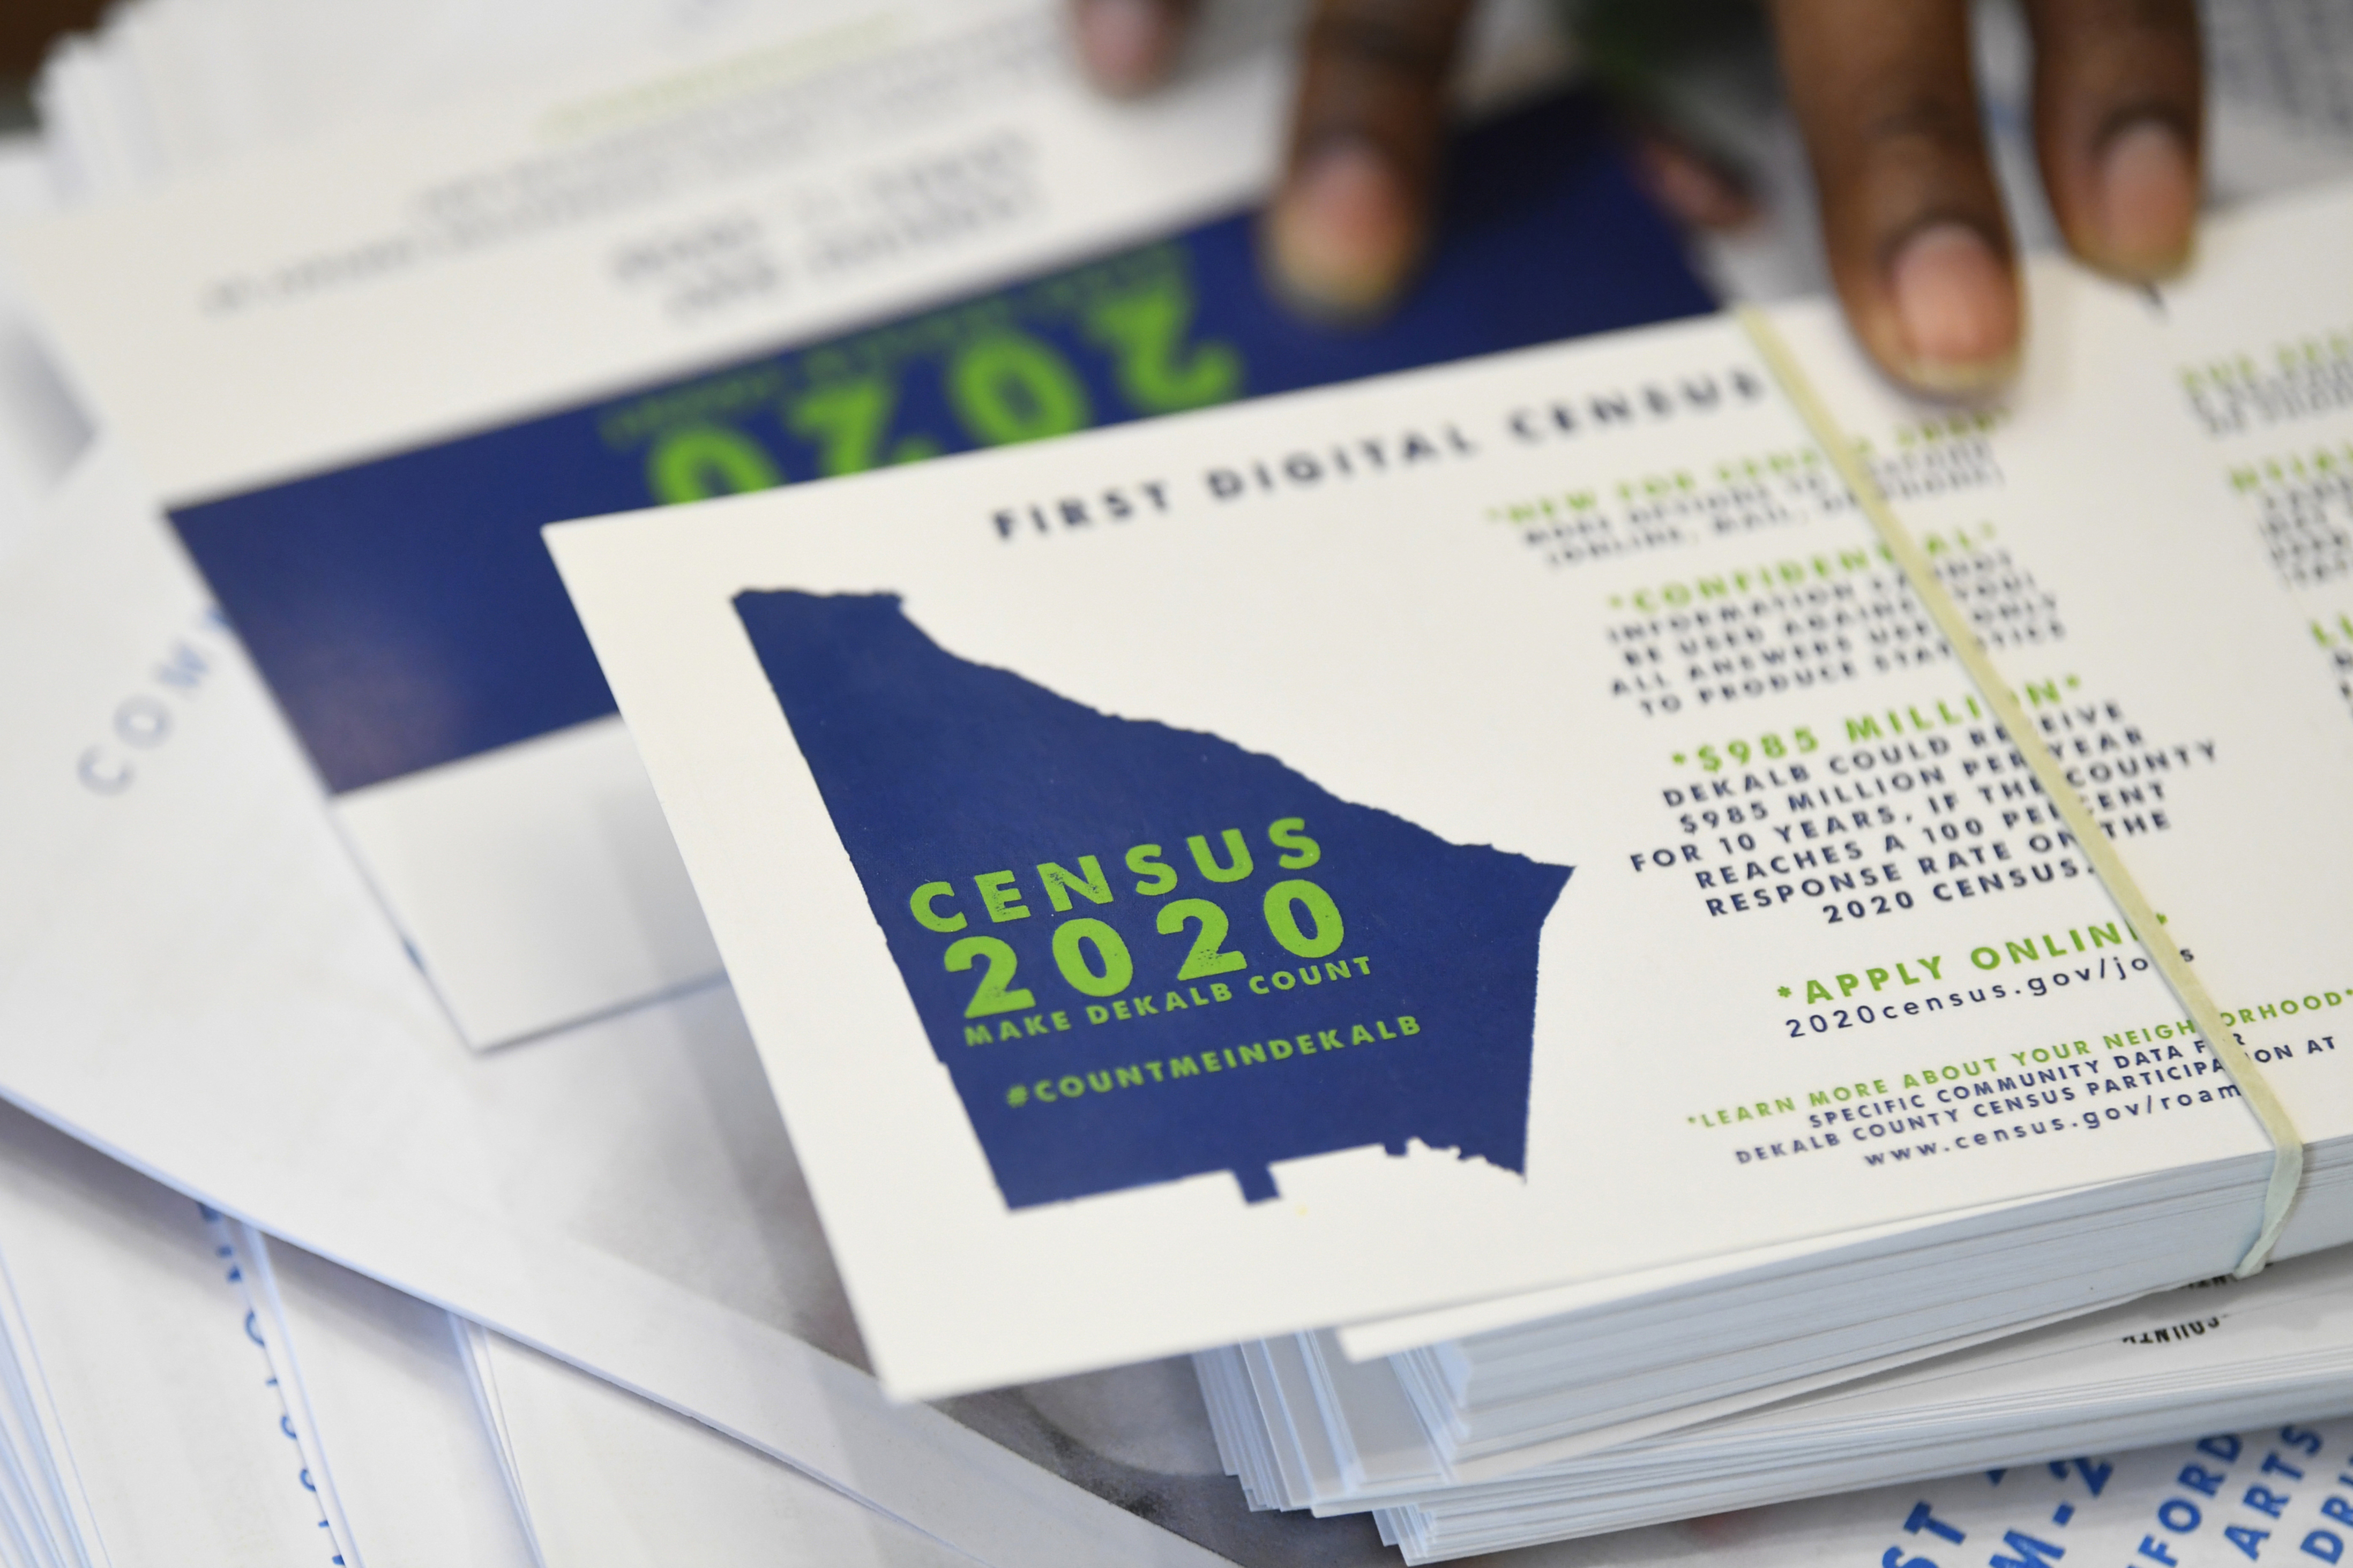 Dick Simpson, professor of political science at the University of Illinois at Chicago, warns that the population of Illinois could be undercounted significantly in the 2020 Census, resulting in a loss of representation in Congress and less federal funding.